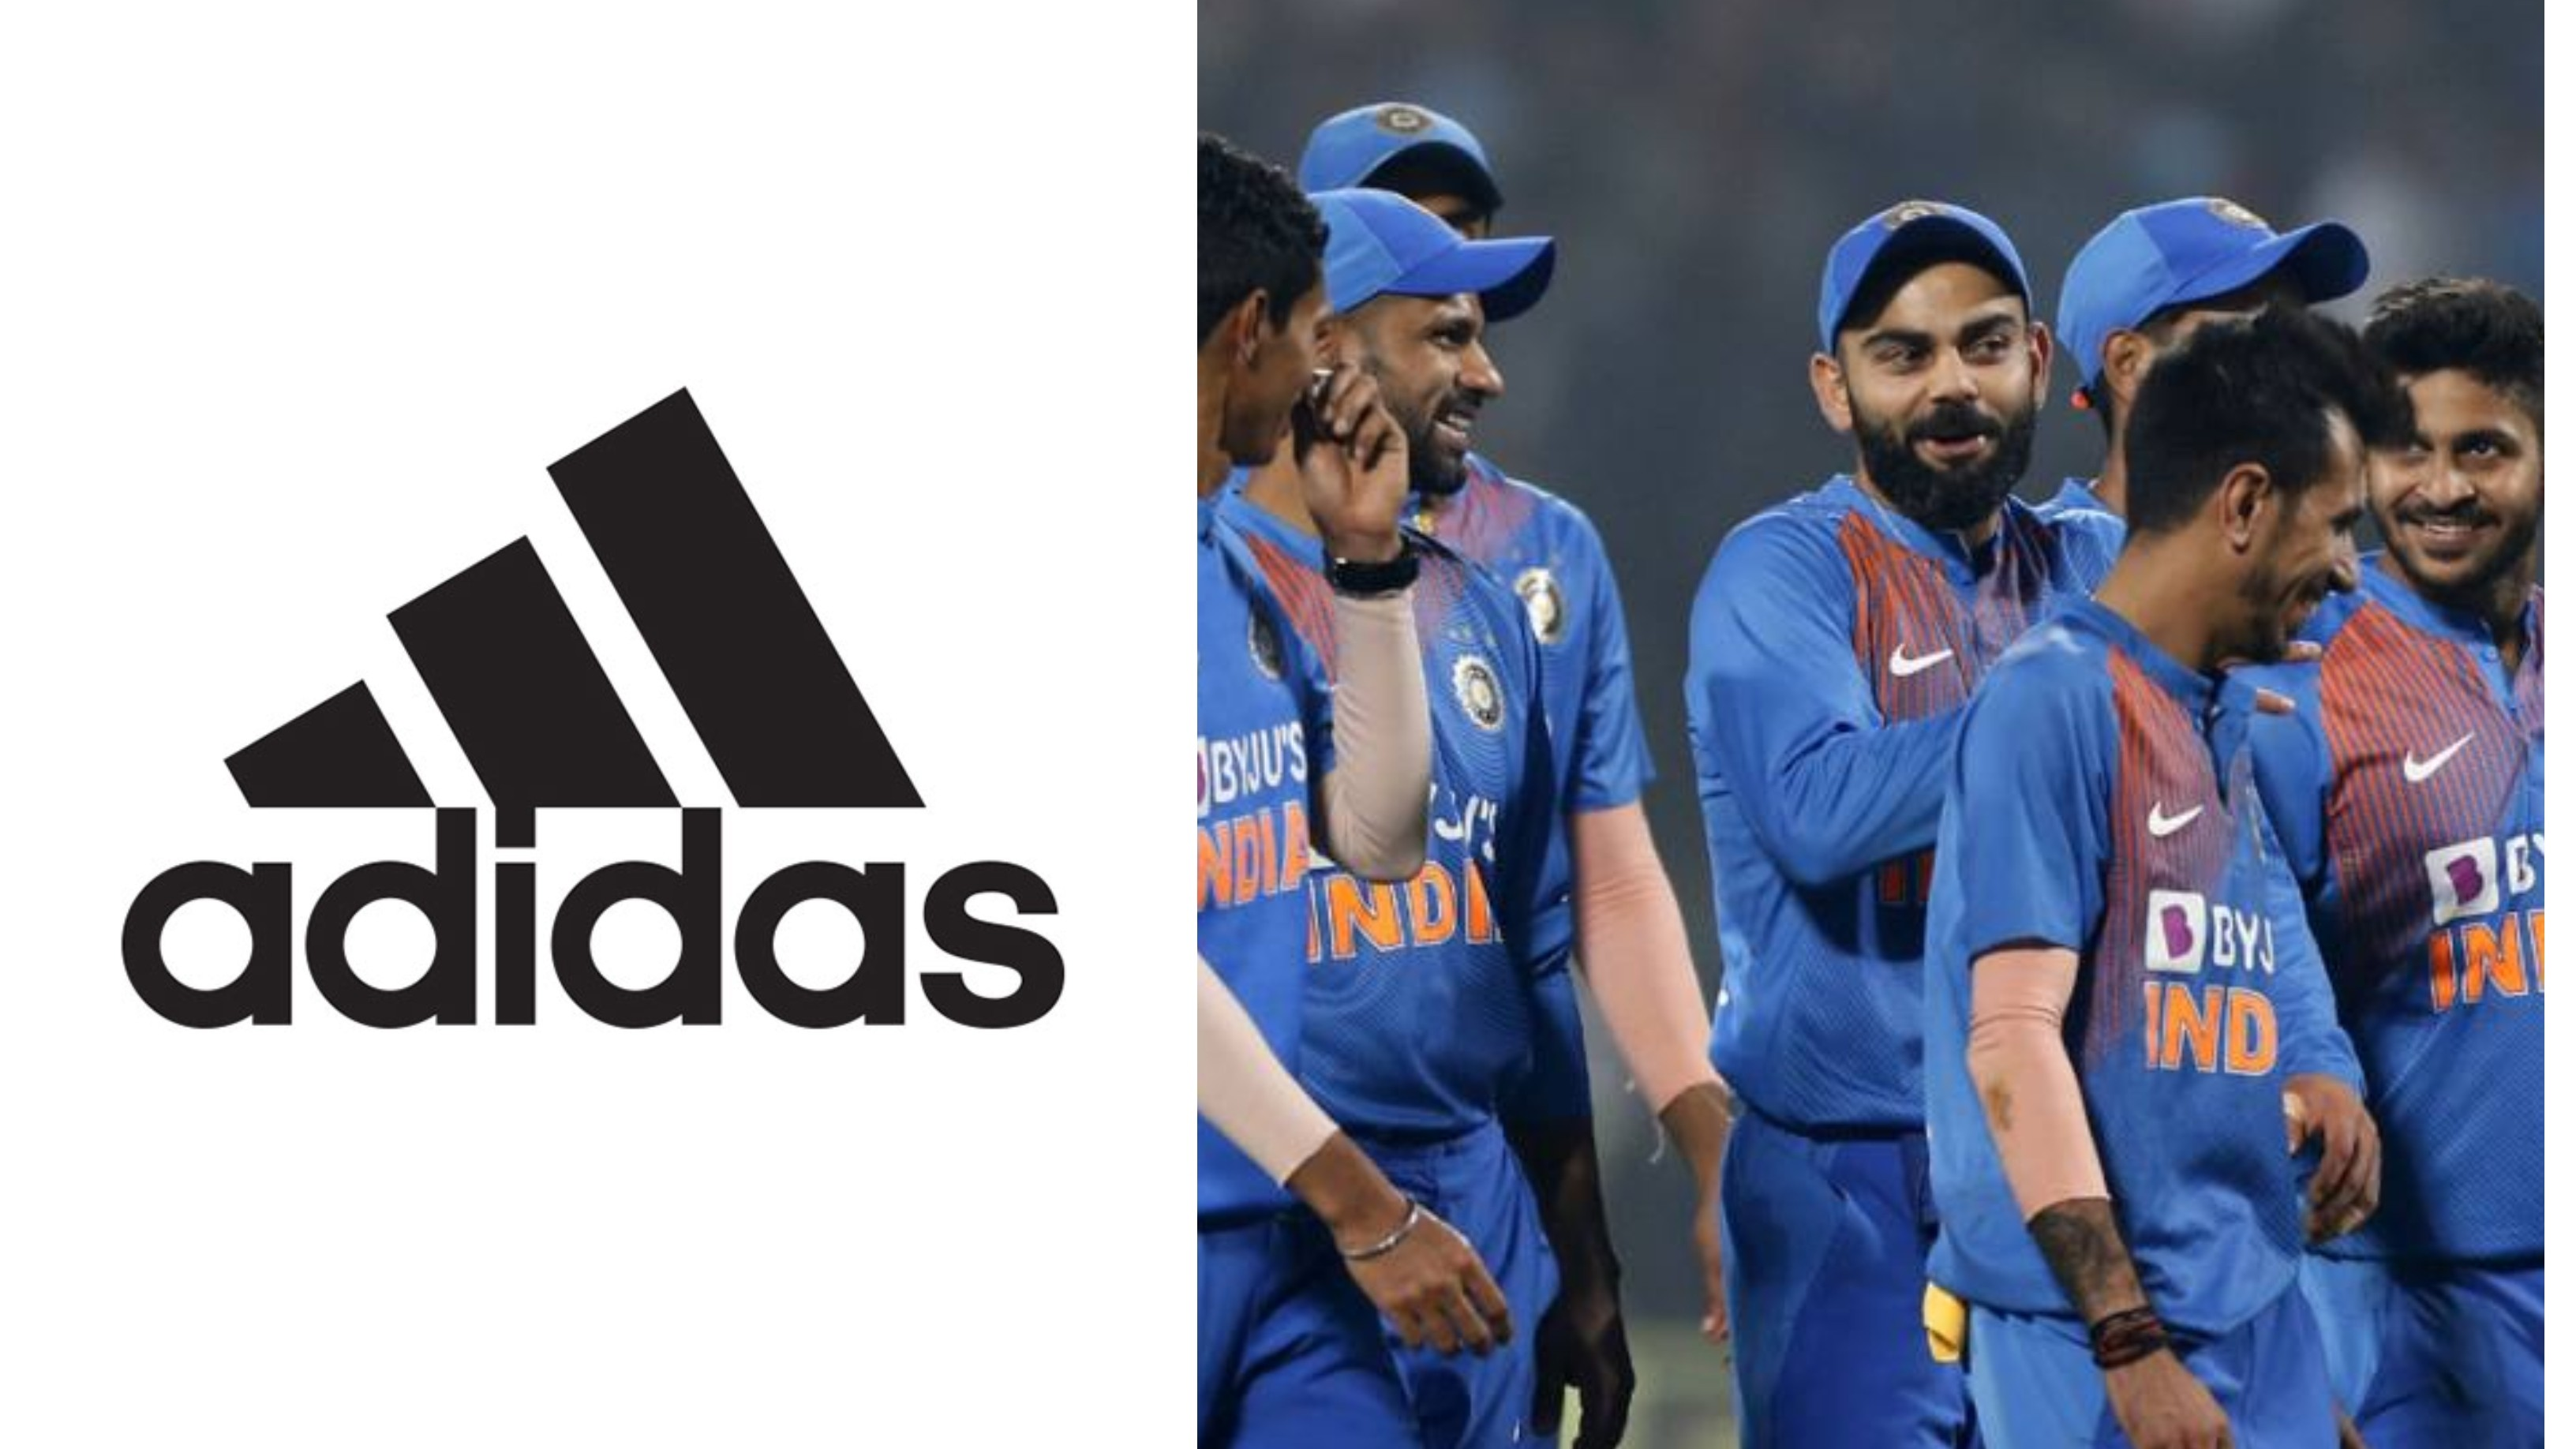 Adidas throws hat in the ring for Team India's kit sponsorship: Report